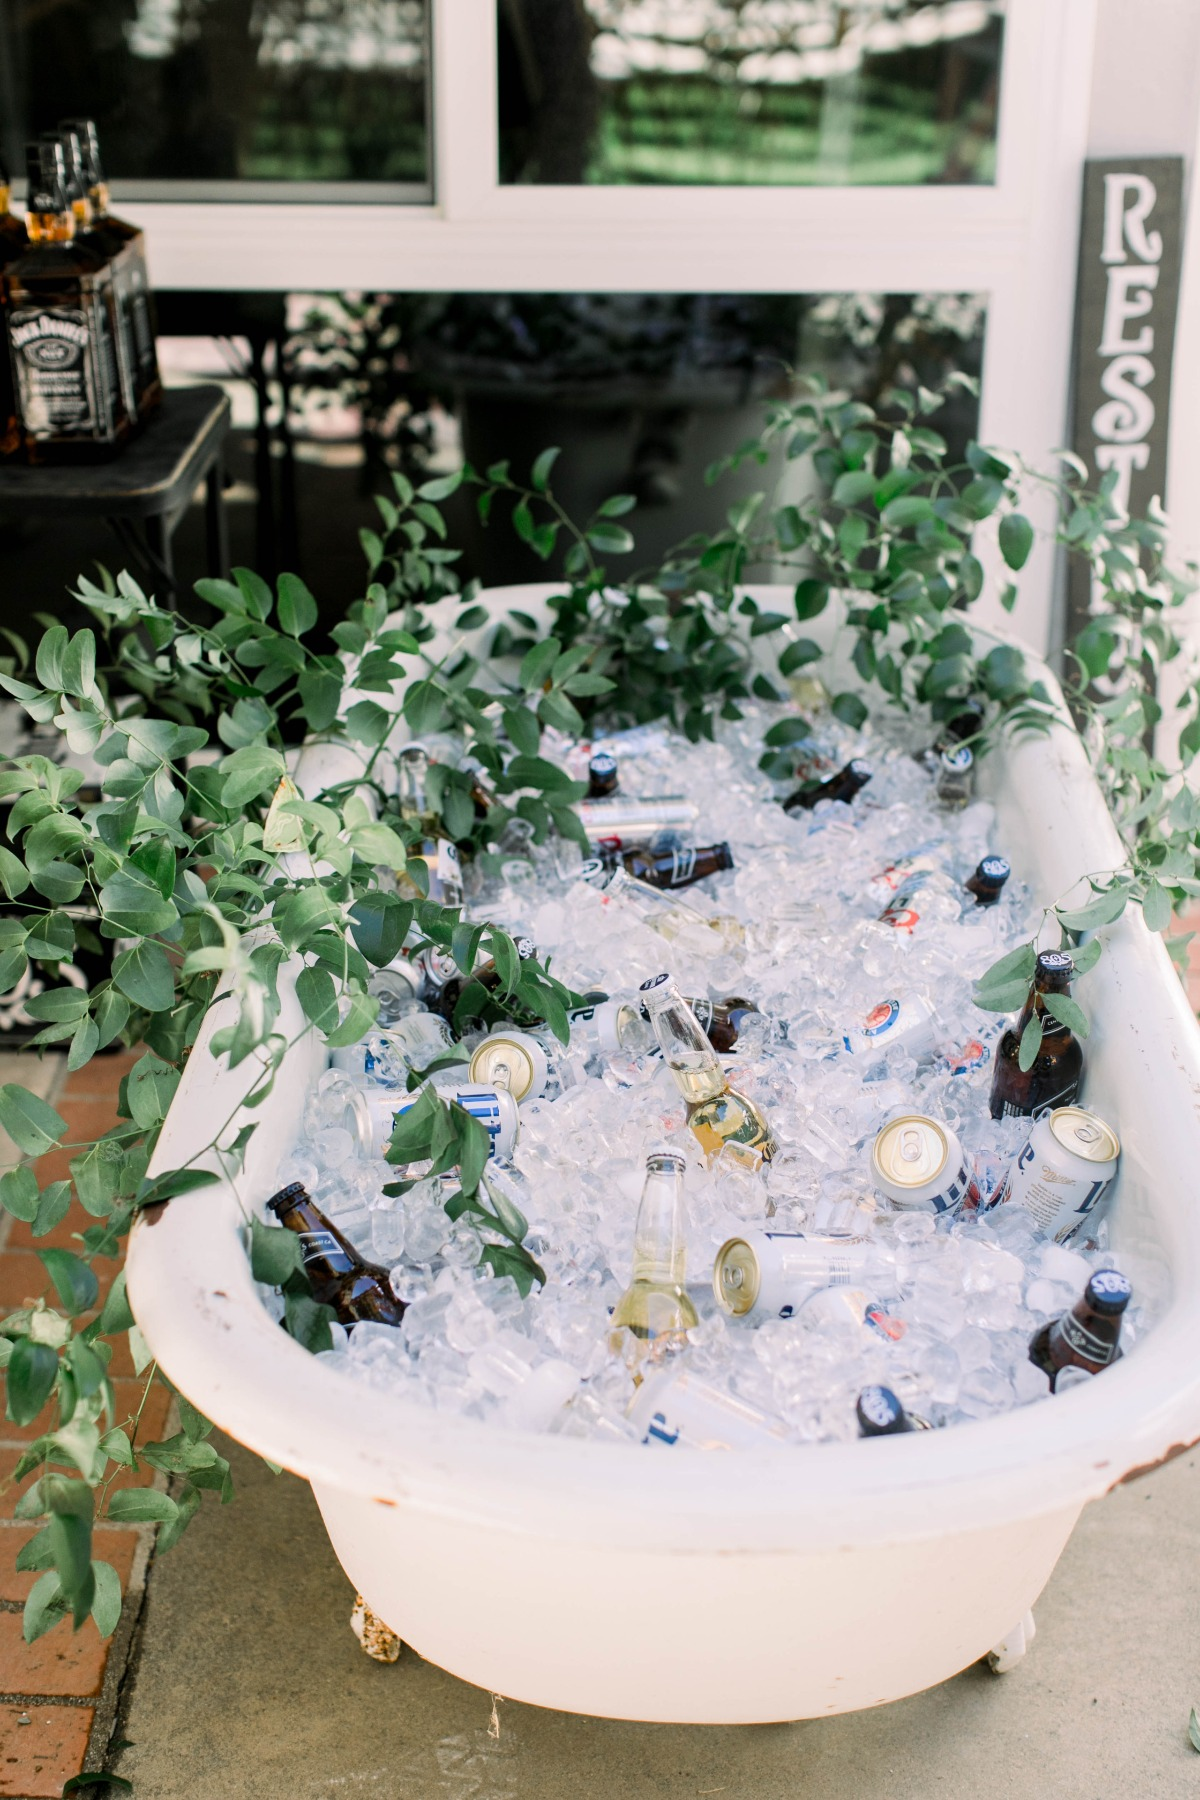 Bath tub cooler for a summer wedding in Tennessee filled with ice and beers, surrounded by greenery